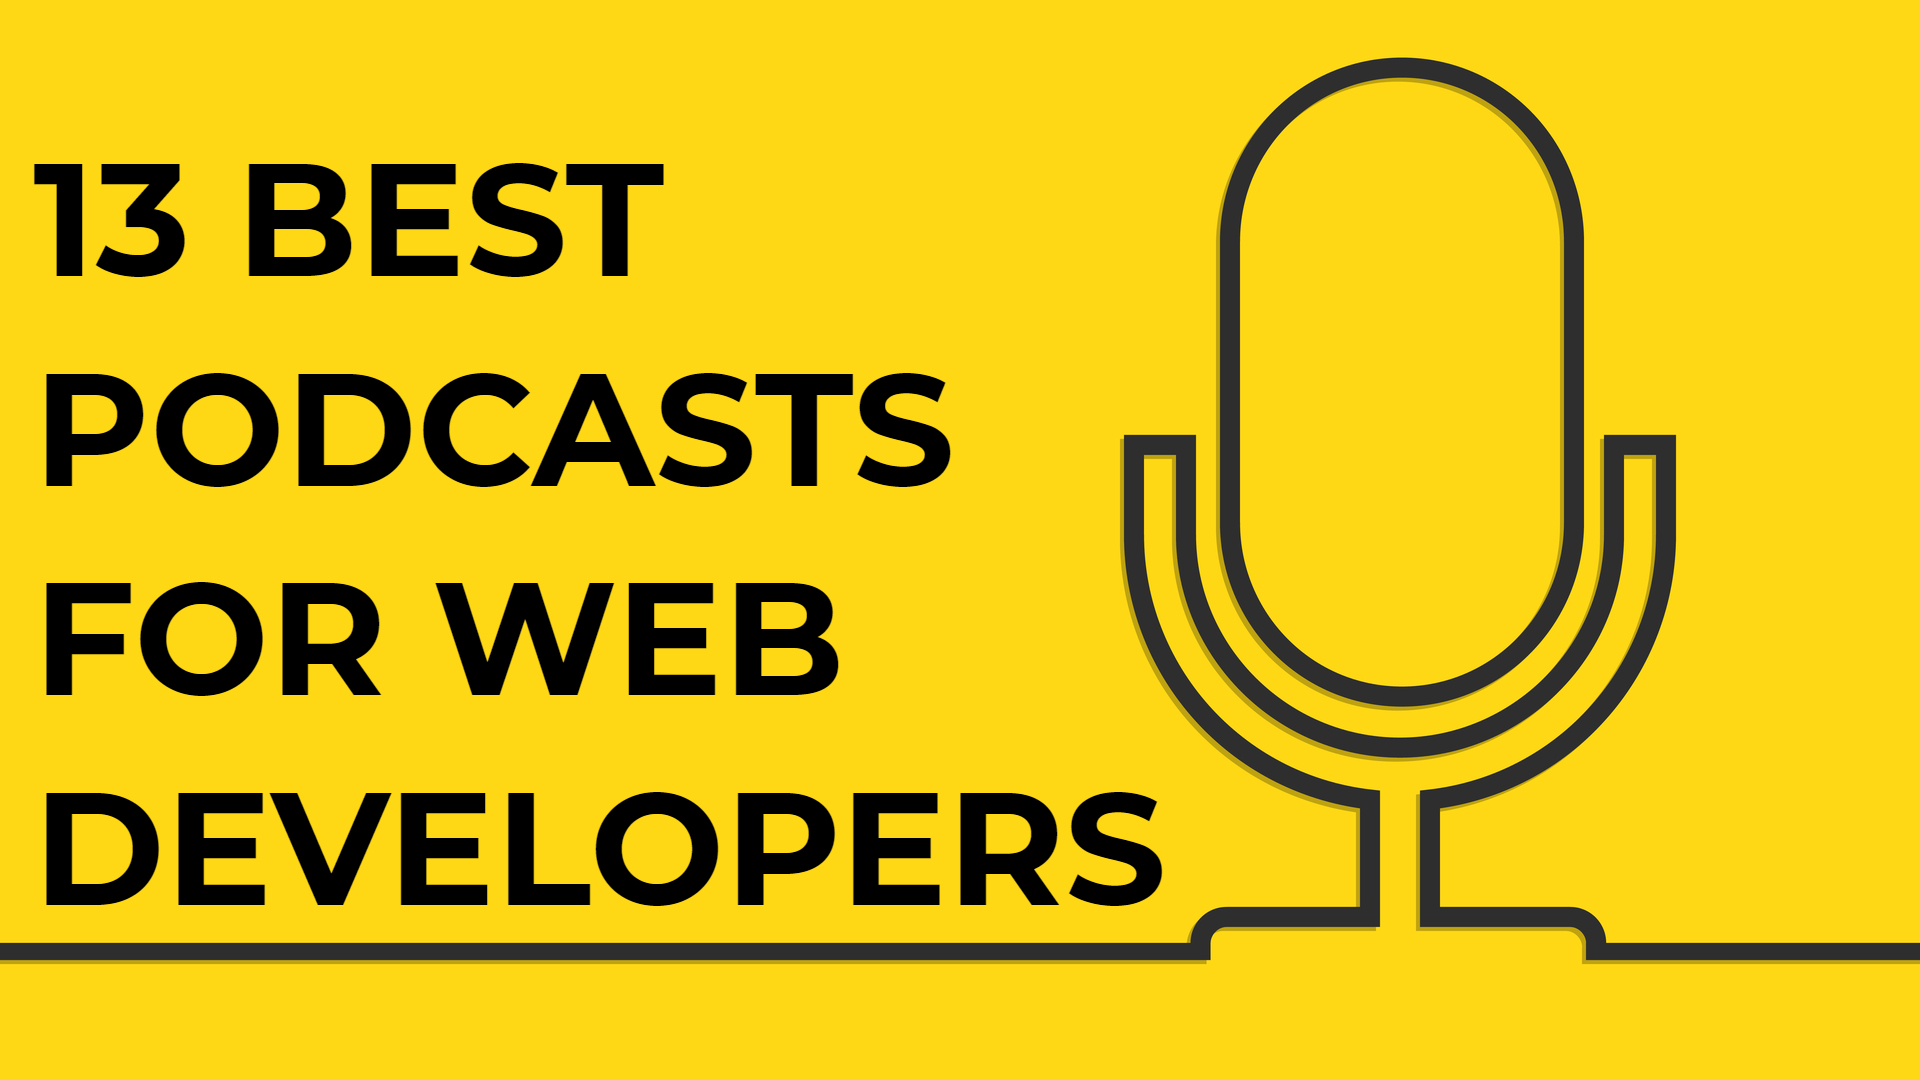 13 Best Podcasts For Web Developers Invent With Code